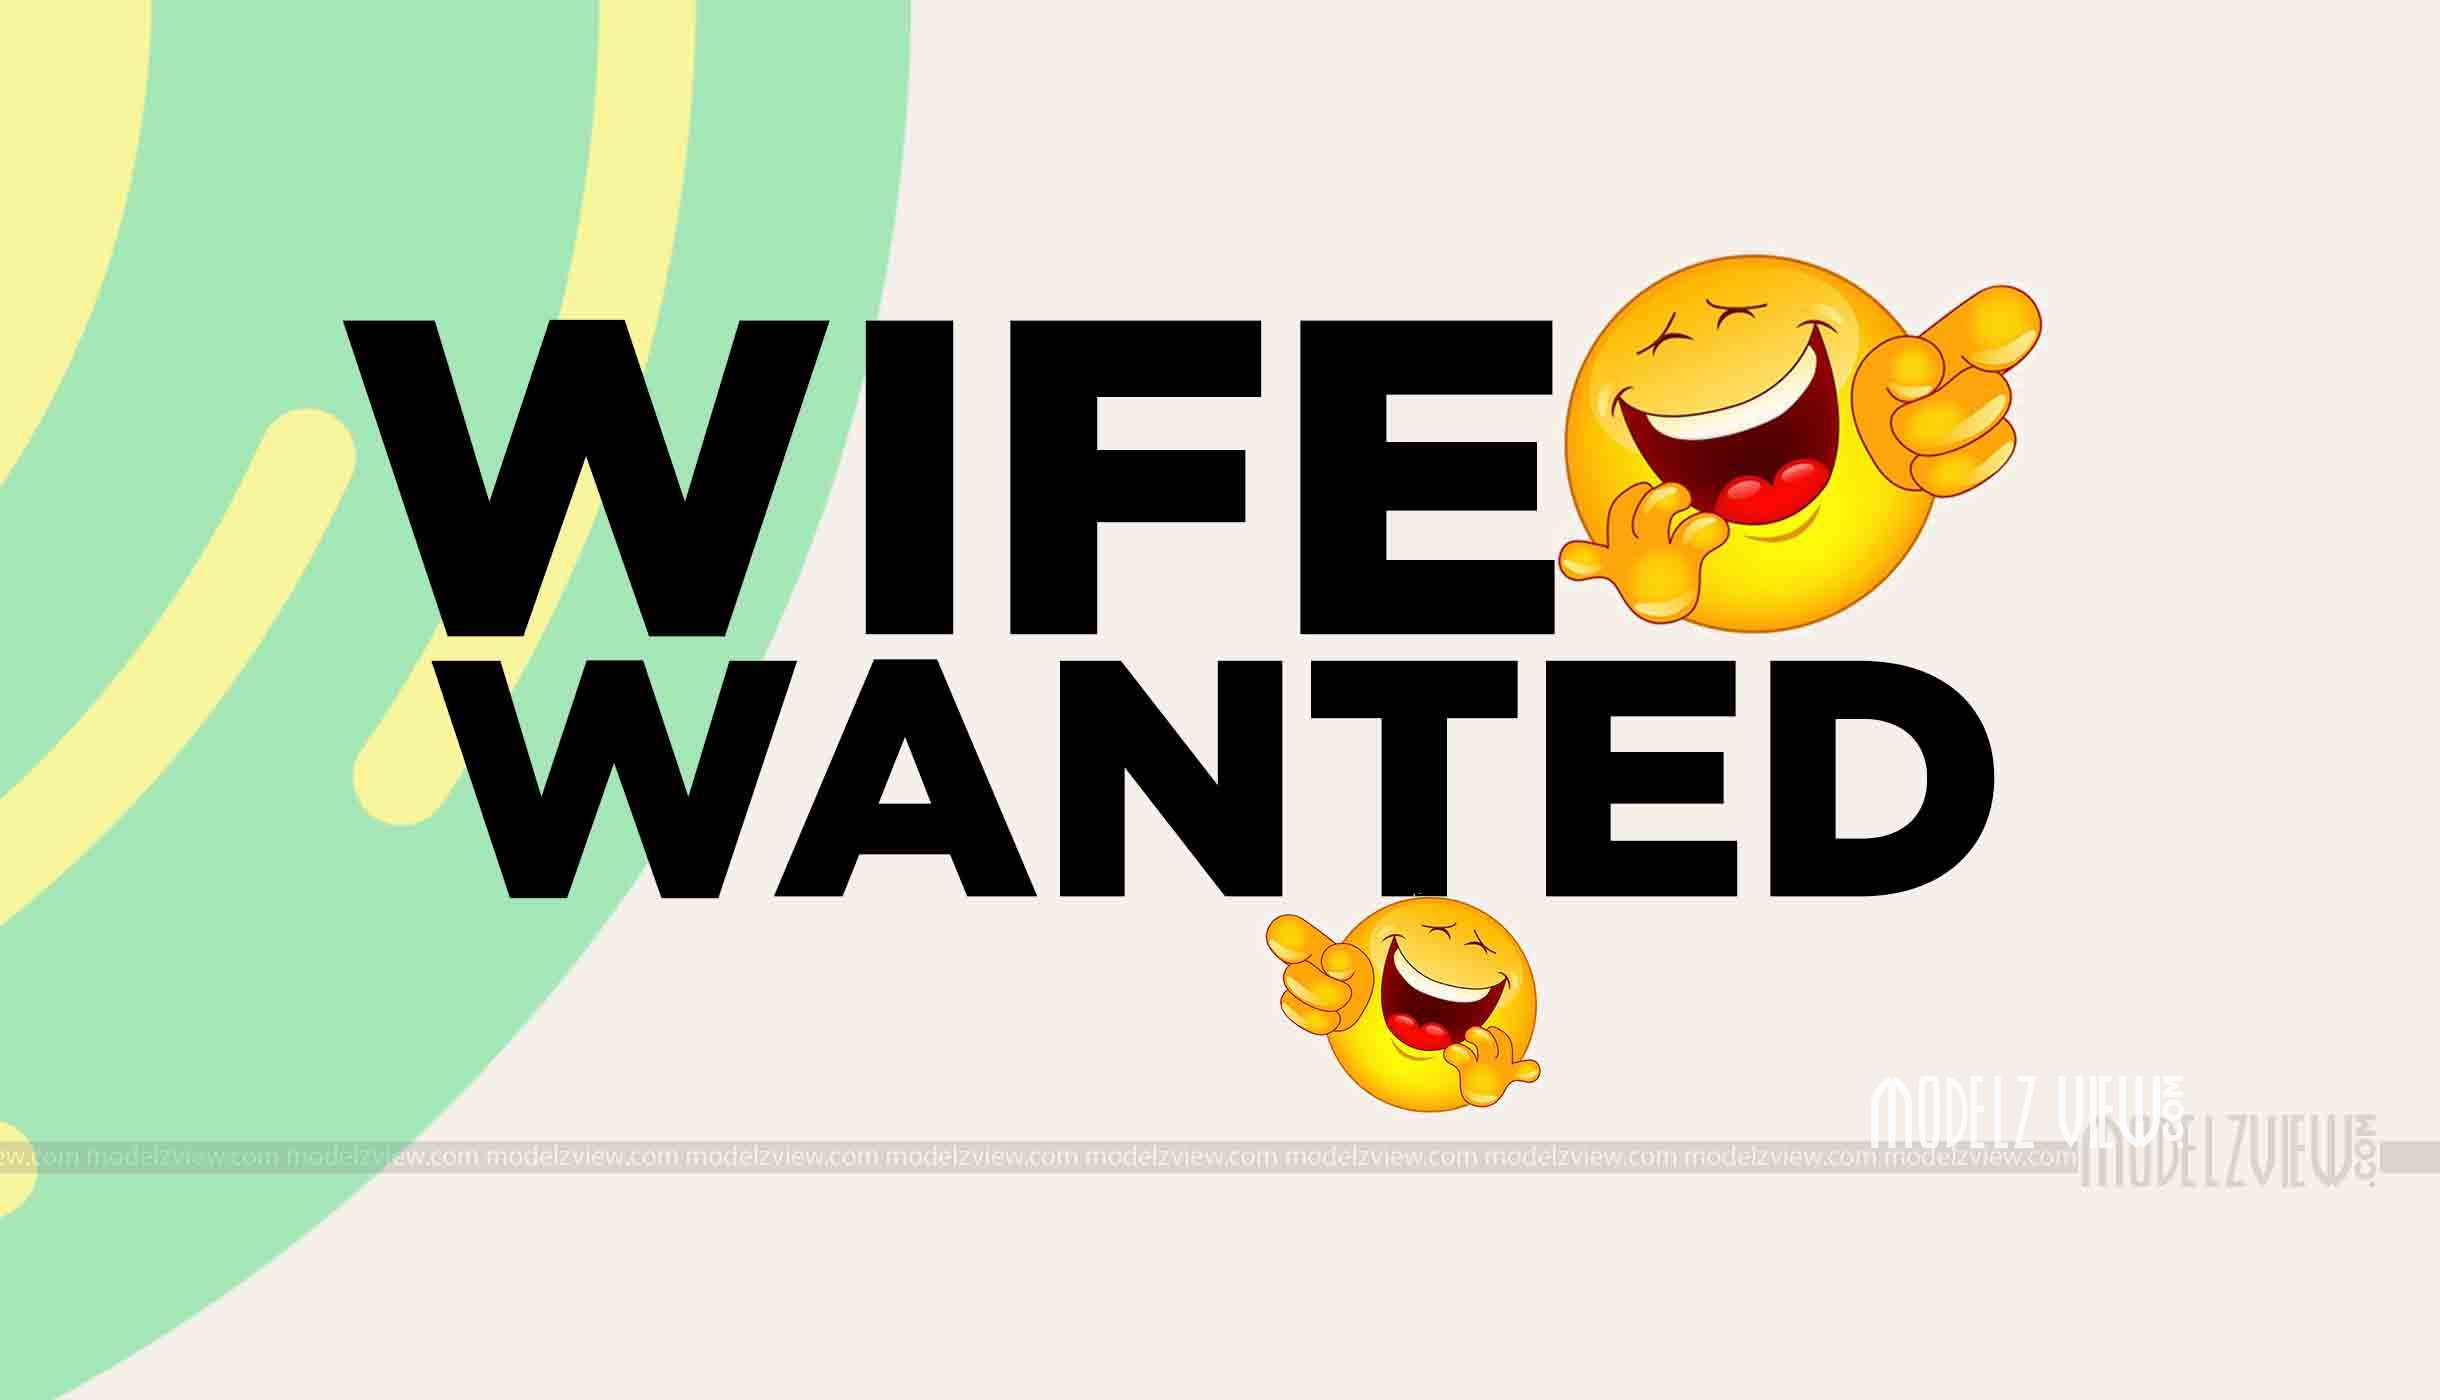 Wife wanted – Funny Jokes That Never Get Old vol.05